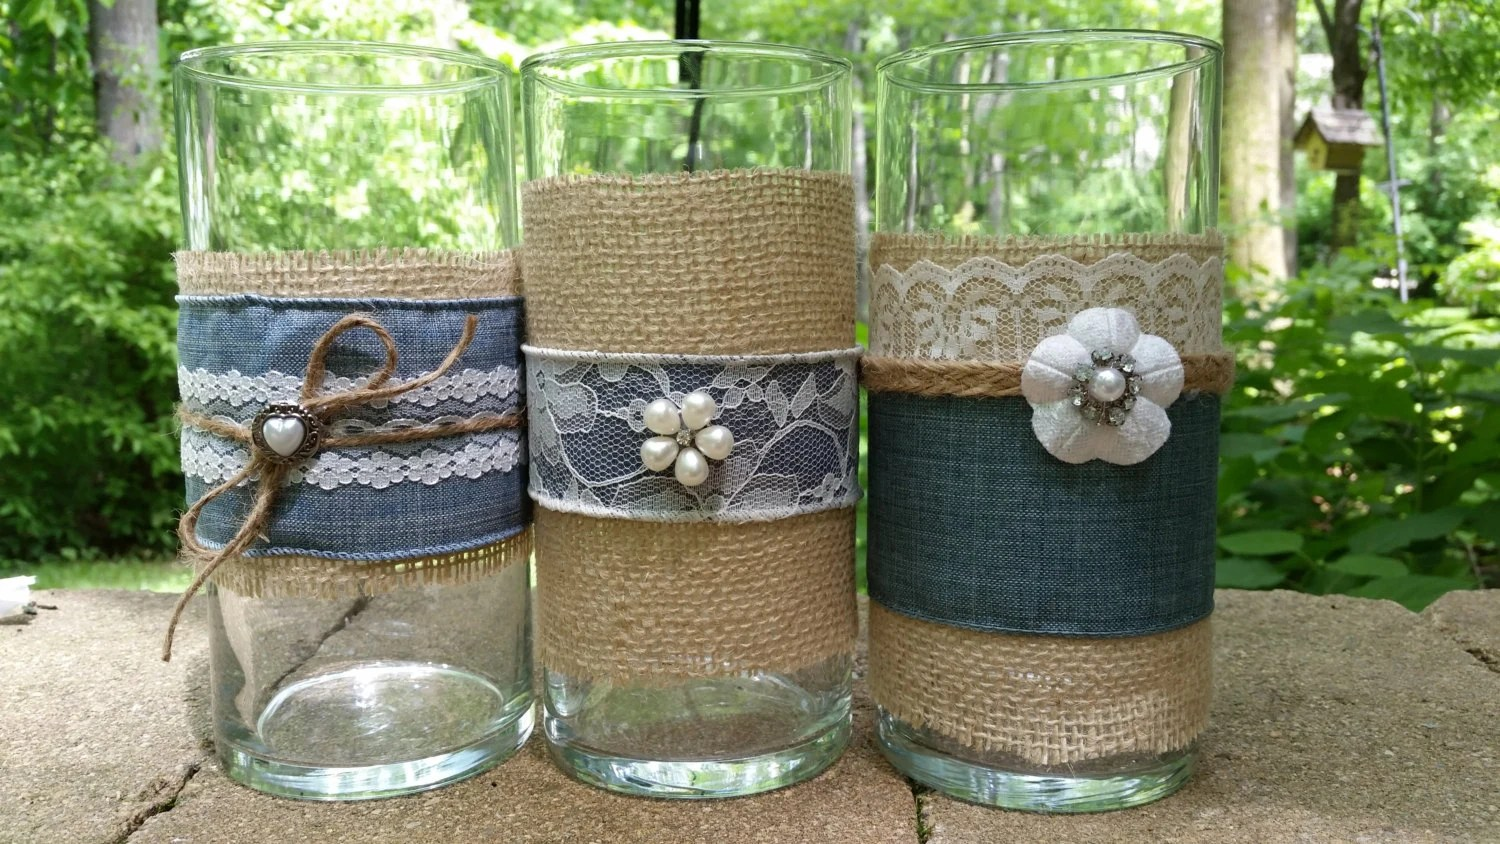 LARGE BURLAP And Lace Vase Victorian Rustic Chic Barn Country